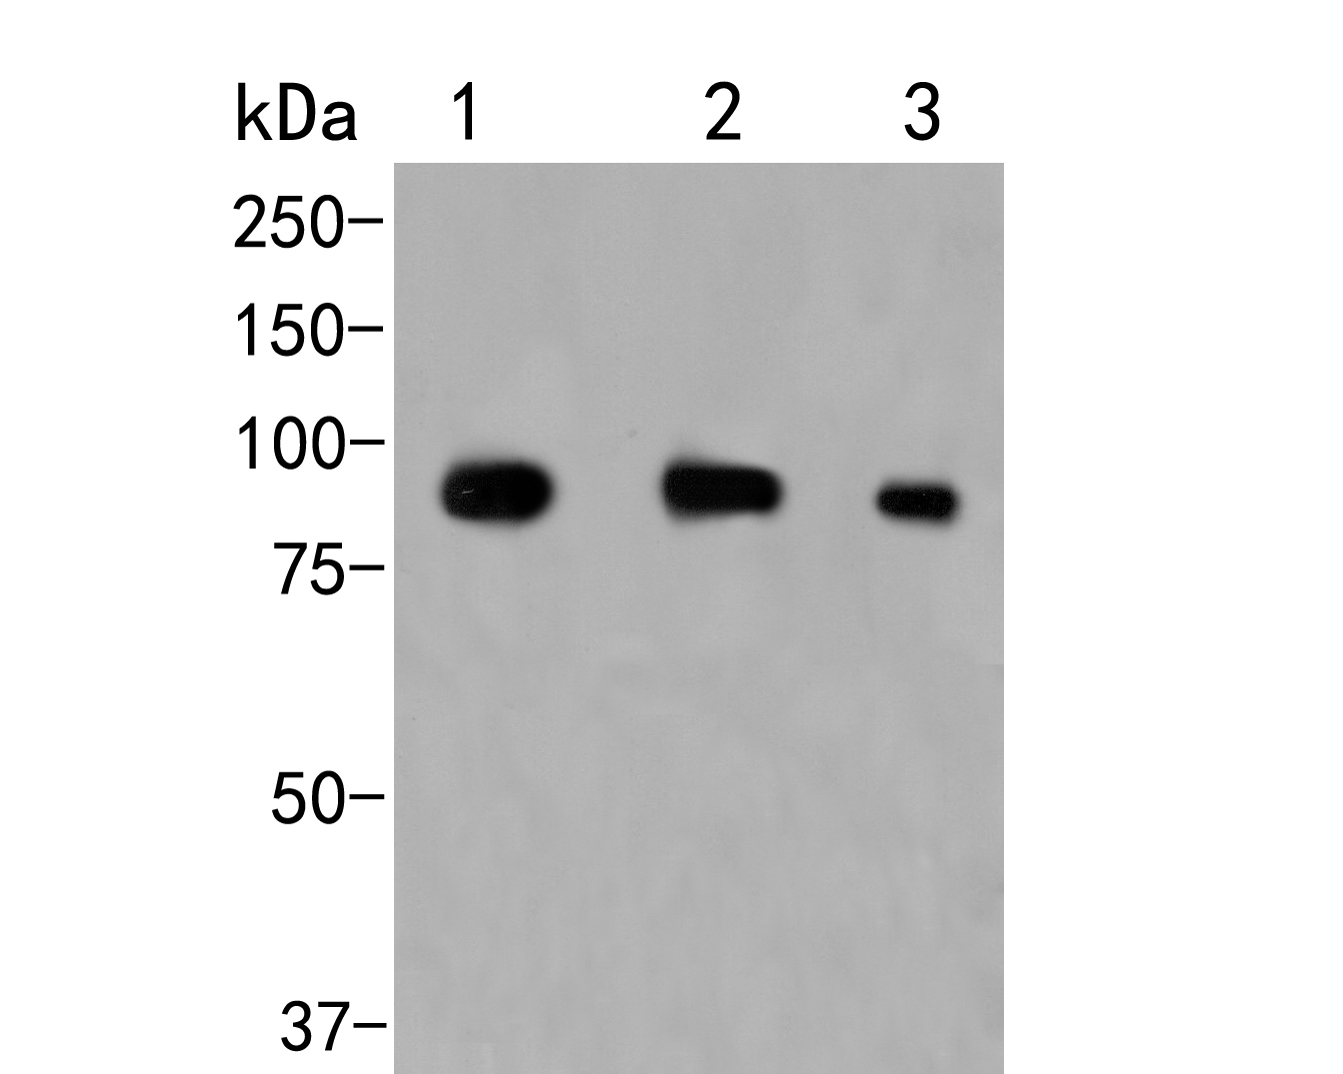 Western blot analysis of CD180 on different lysates. Proteins were transferred to a PVDF membrane and blocked with 5% BSA in PBS for 1 hour at room temperature. The primary antibody (ER2001-06, 1/500) was used in 5% BSA at room temperature for 2 hours. Goat Anti-Rabbit IgG - HRP Secondary Antibody (HA1001) at 1:5,000 dilution was used for 1 hour at room temperature.<br /> Positive control: <br /> Lane 1: Daudi cell lysate<br /> Lane 2: Rat spleen tissue lysate<br /> Lane 3: Mouse spleen tissue lysate